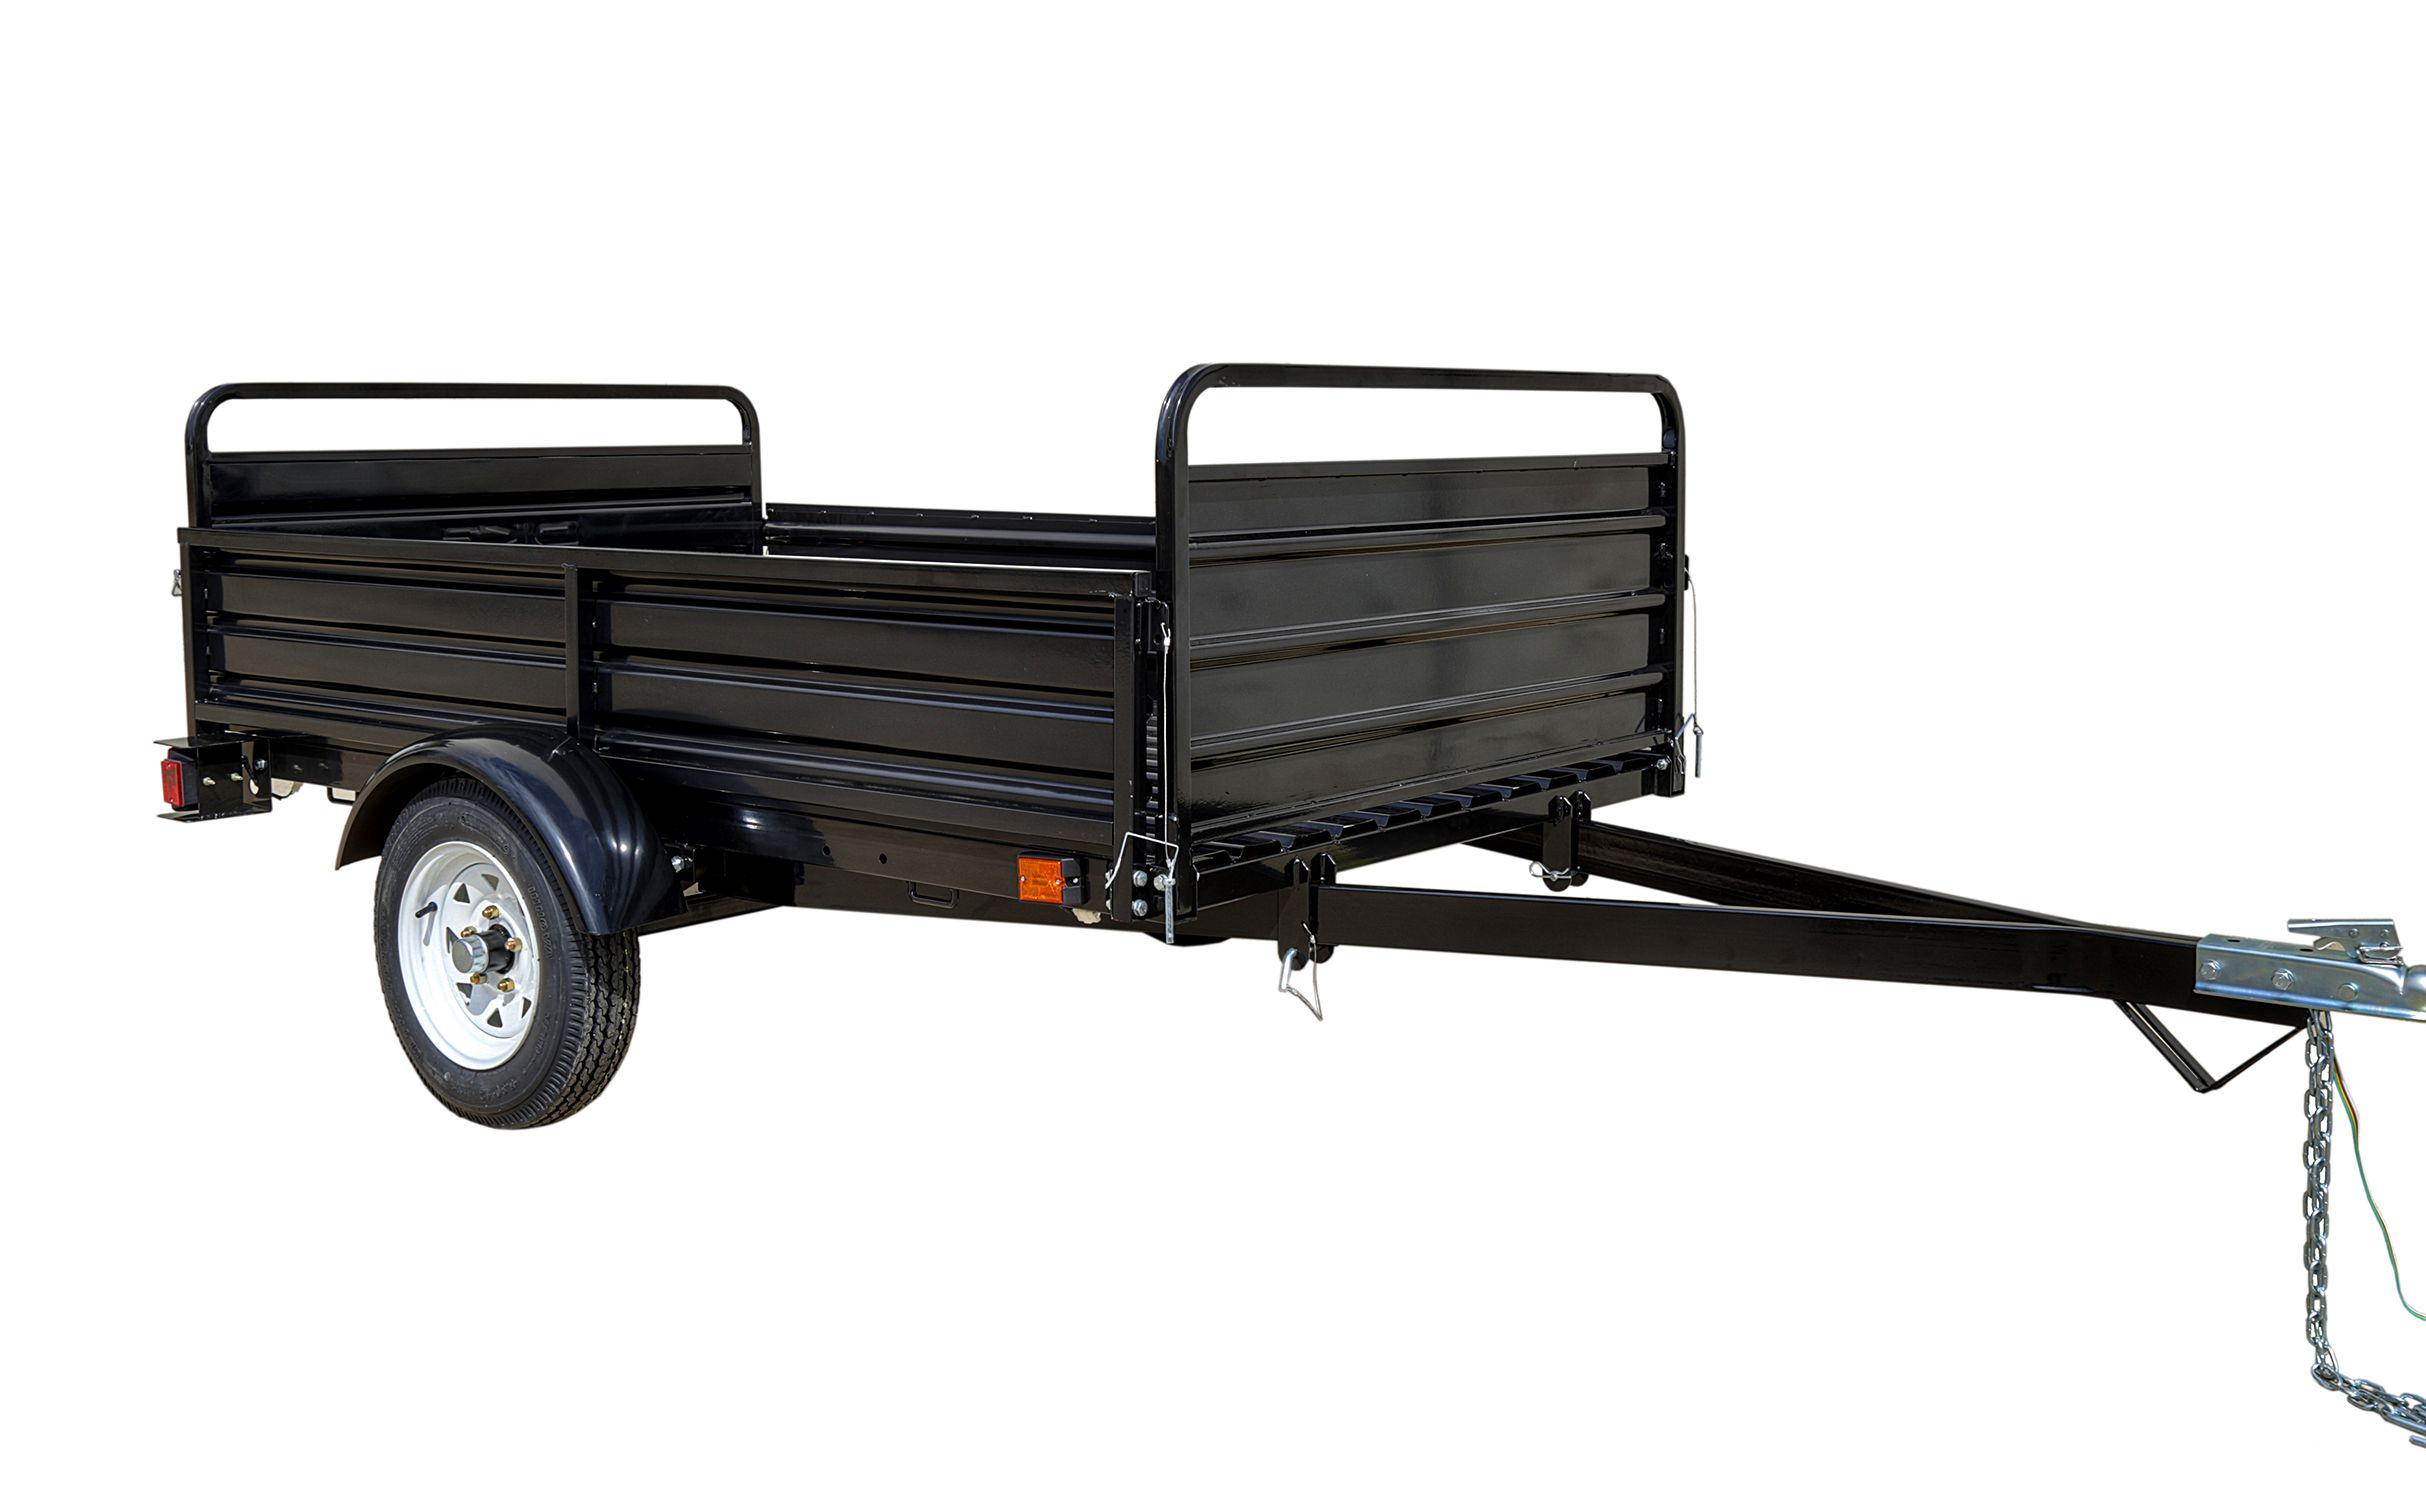 DK2 4 5 ft  x 7 5 ft  Mighty Multi Utility Trailer with Bed Tilt